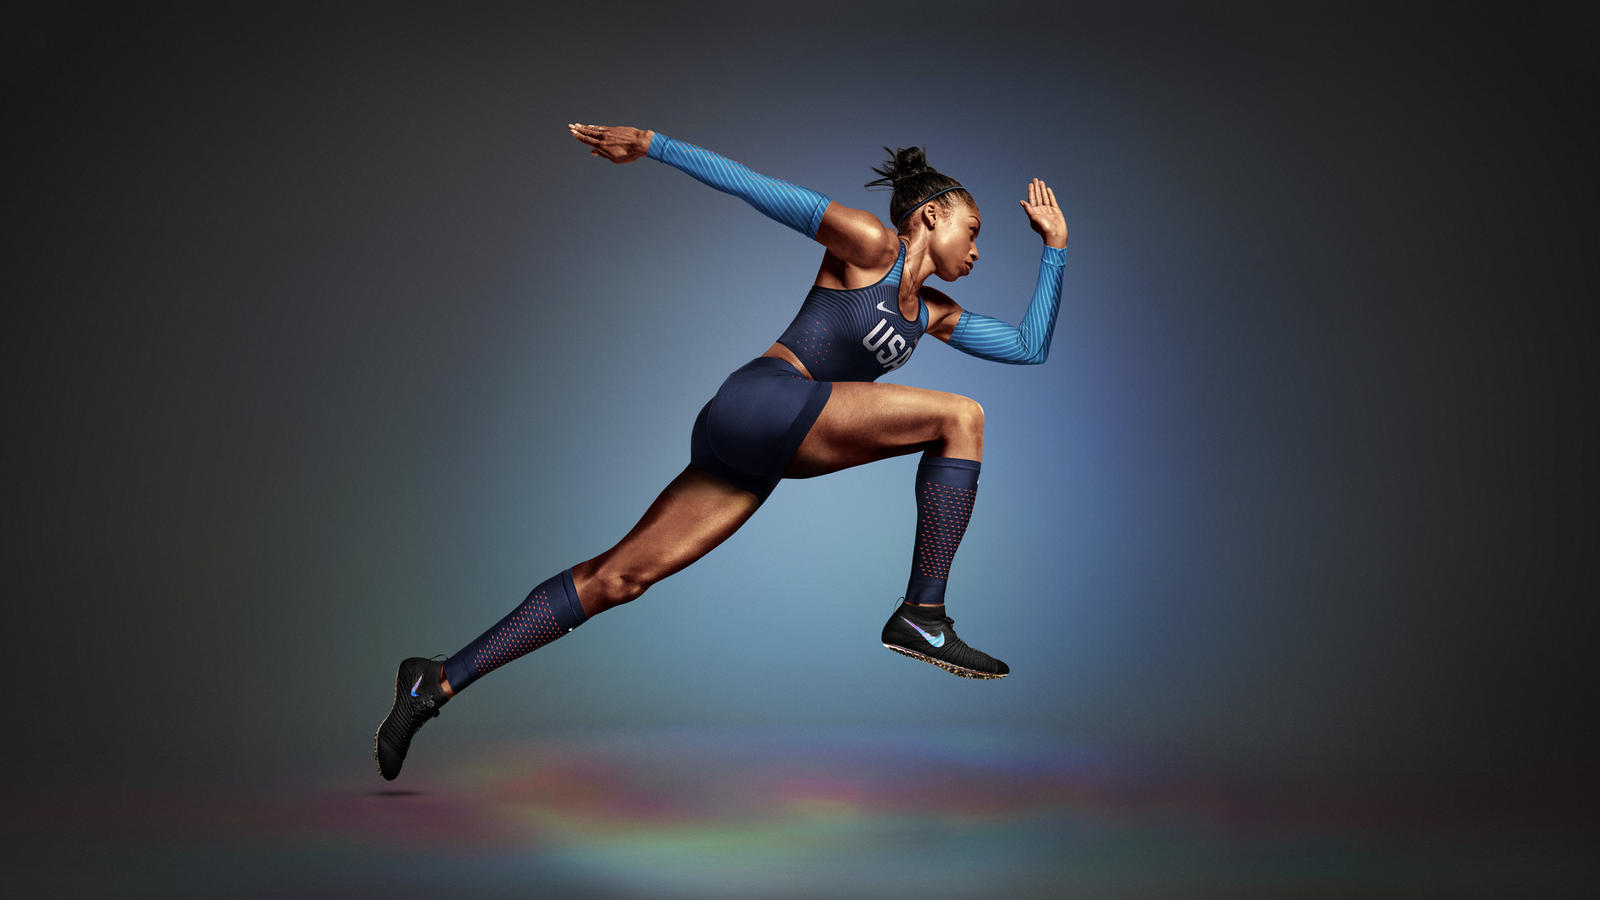 04ae26c92 Nike Zoom Superfly Flyknit track spike that they had designed and created  for sprinter Allyson Felix